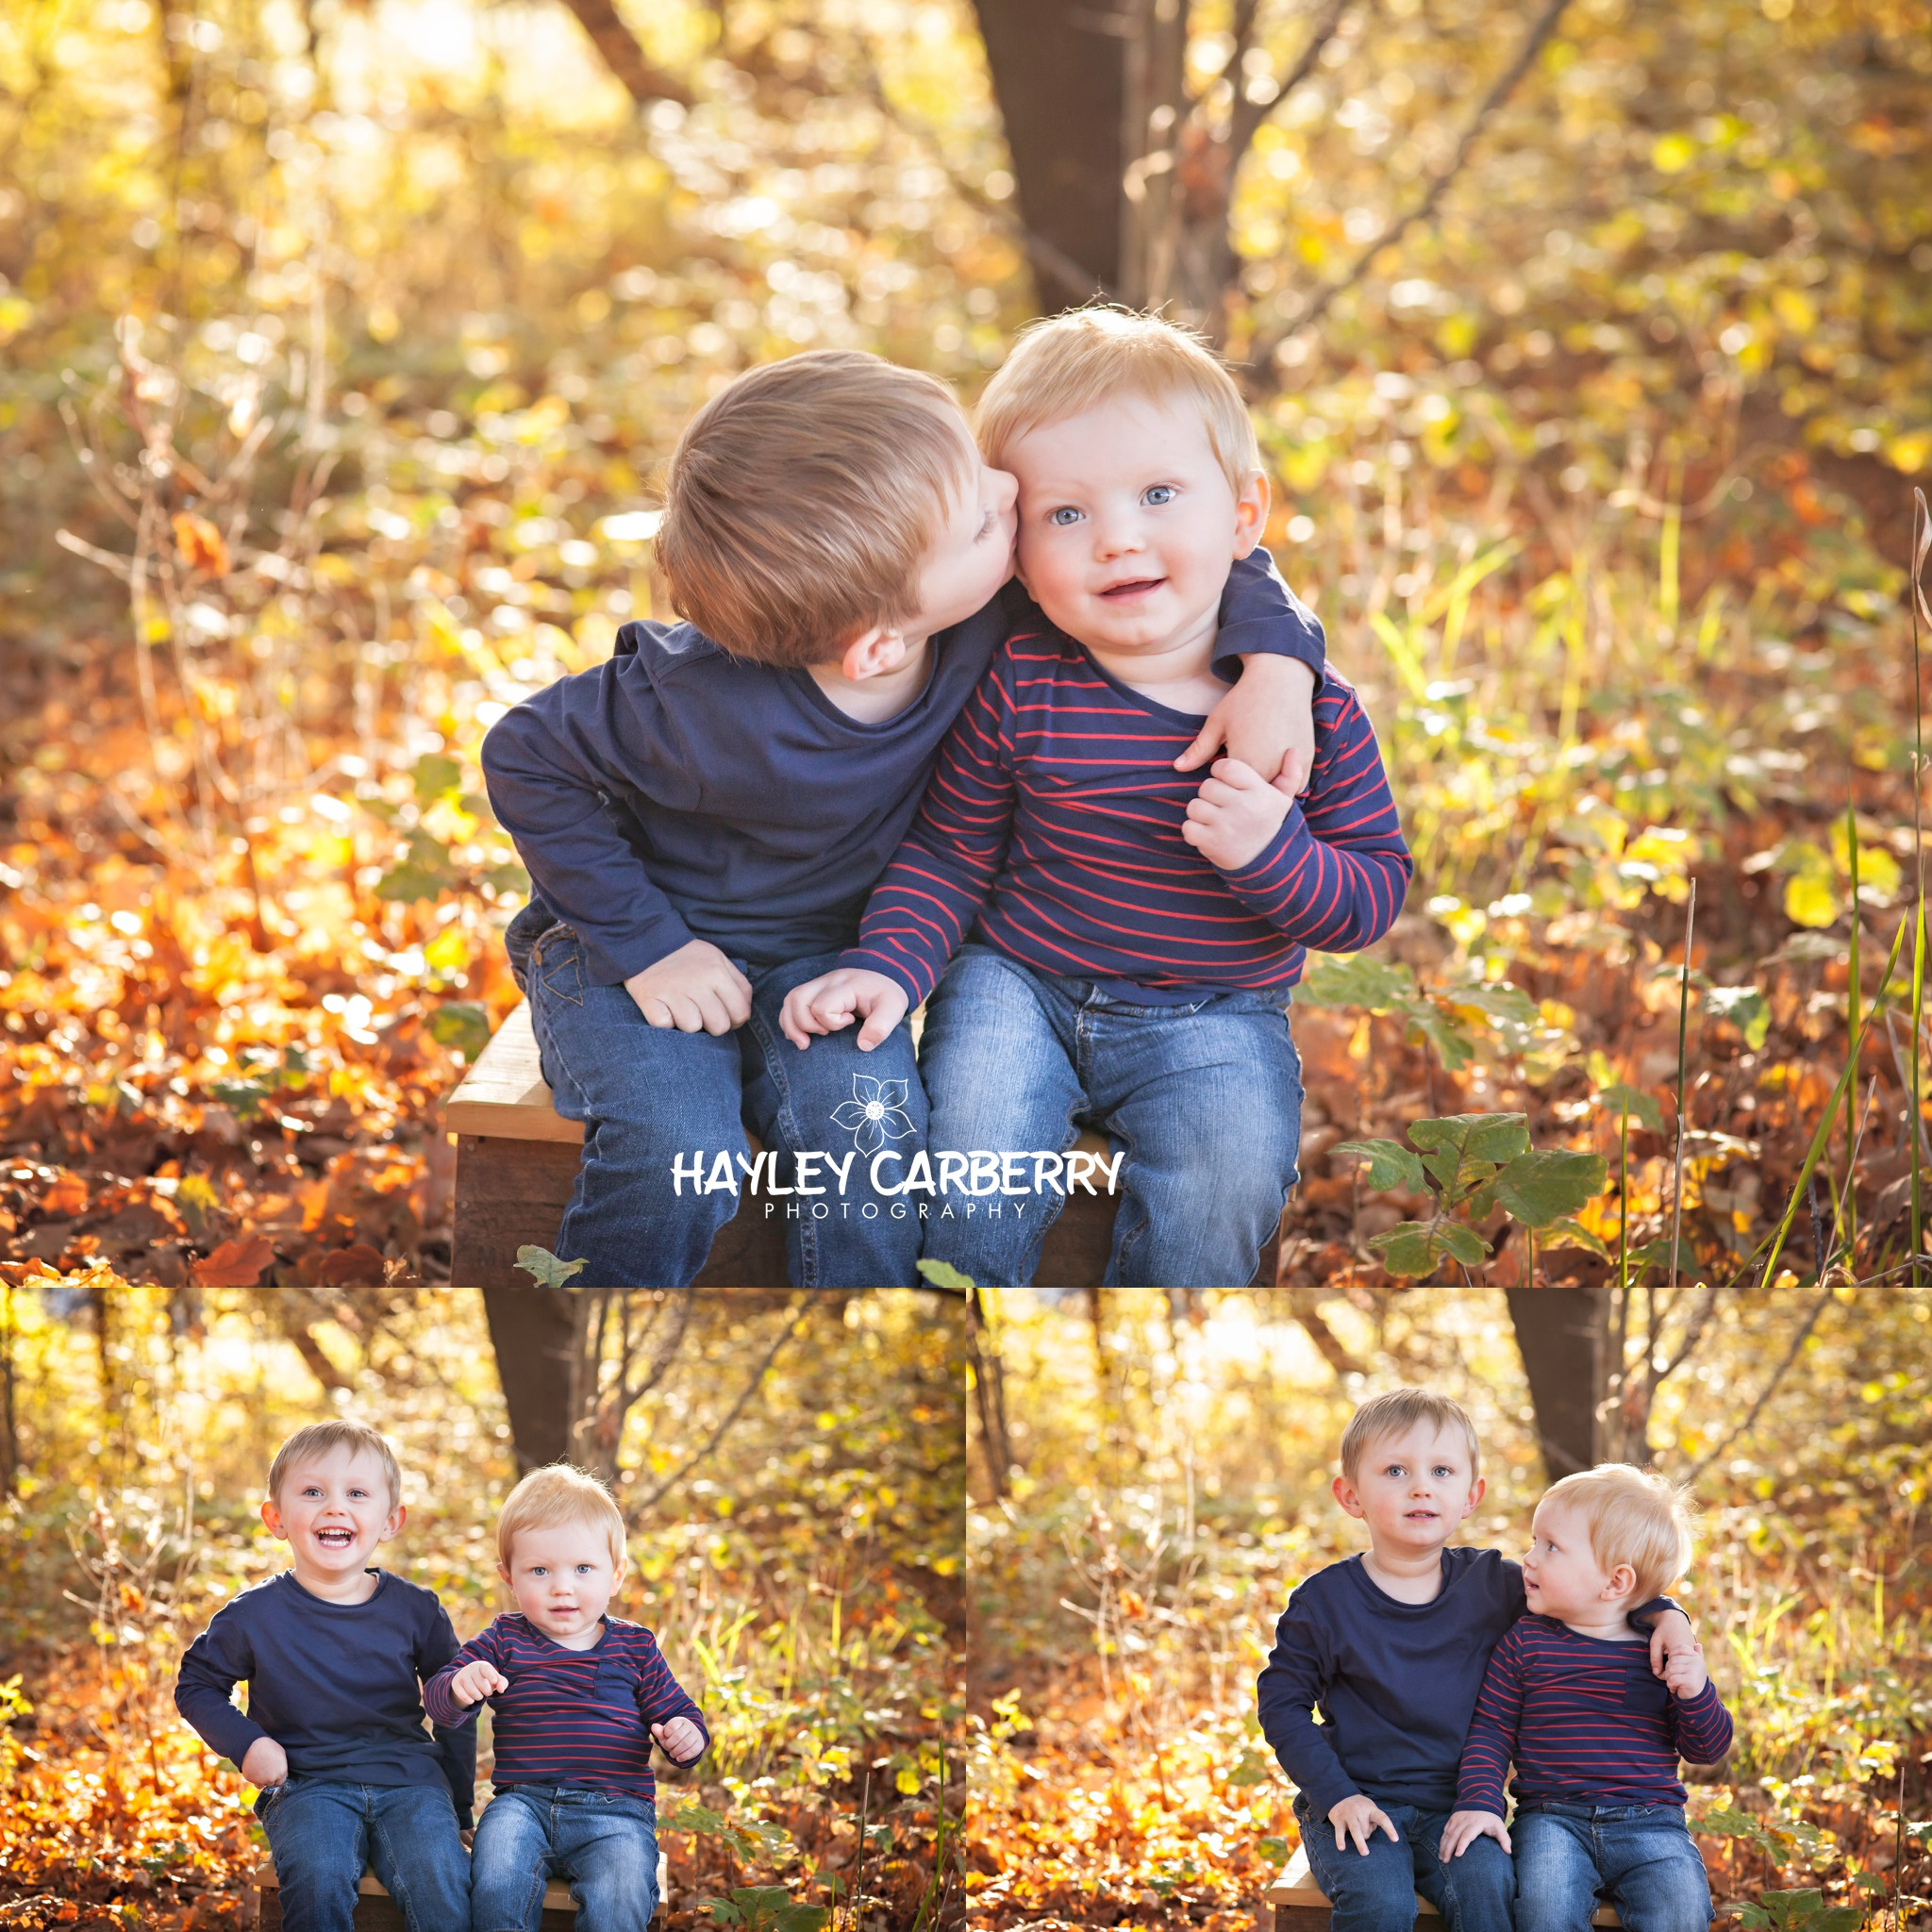 Canberra Babies Children Family Autumn Photography Sessions